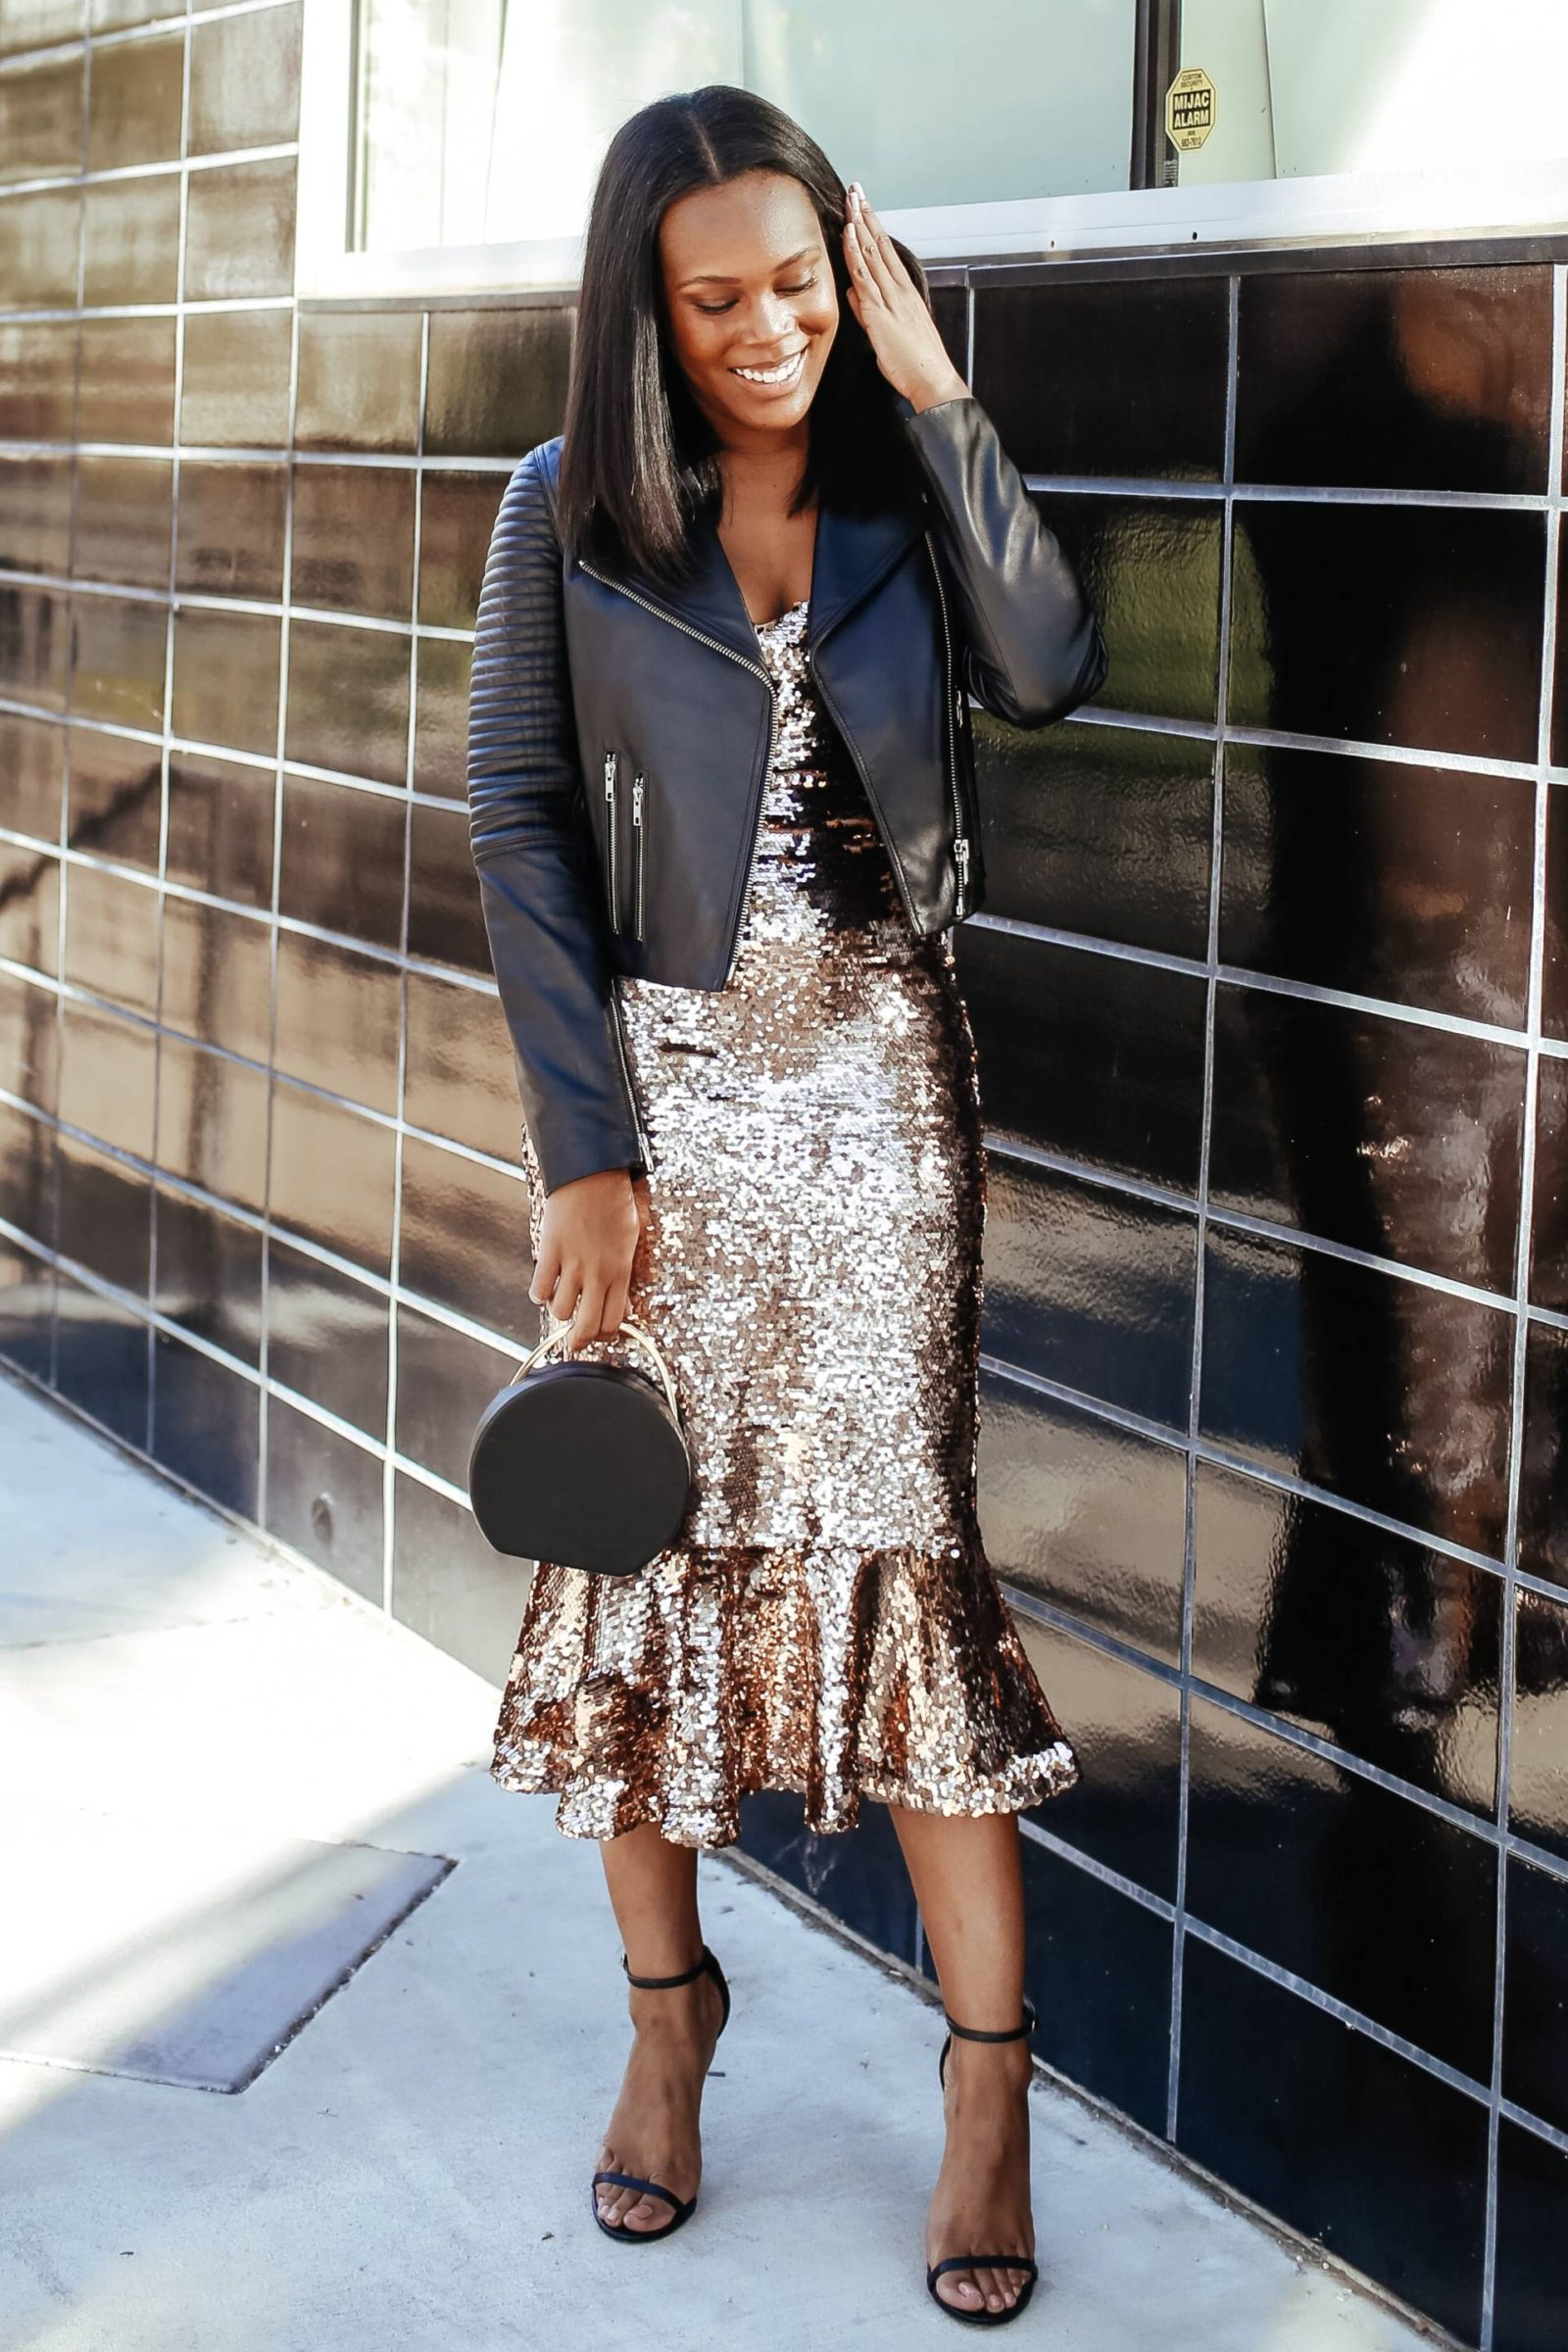 How to Style a sequin dress casually -le fab chic